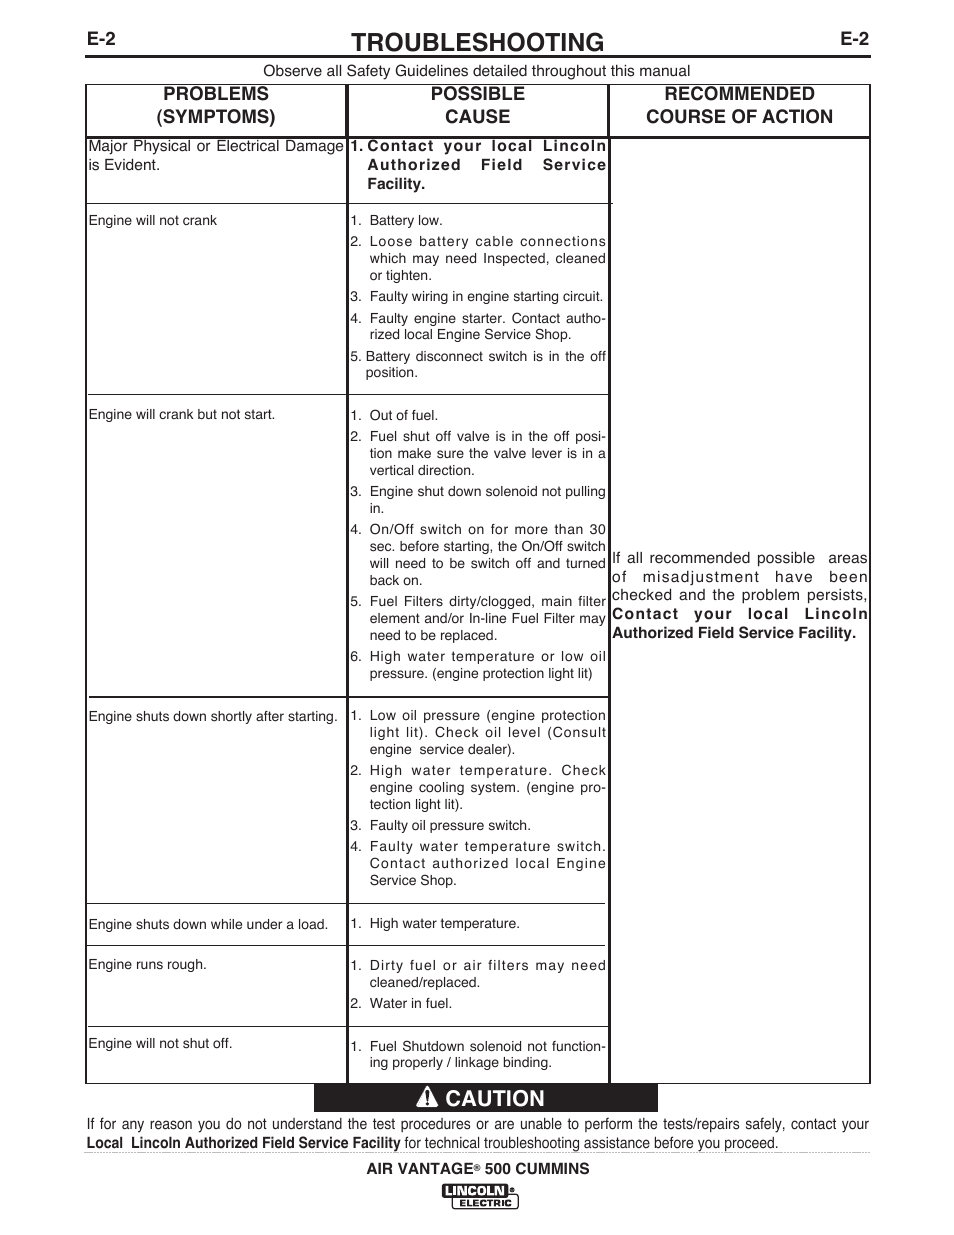 Troubleshooting, Caution | Lincoln Electric IM10065 AIR VANTAGE 500 CUMMINS  User Manual | Page 36